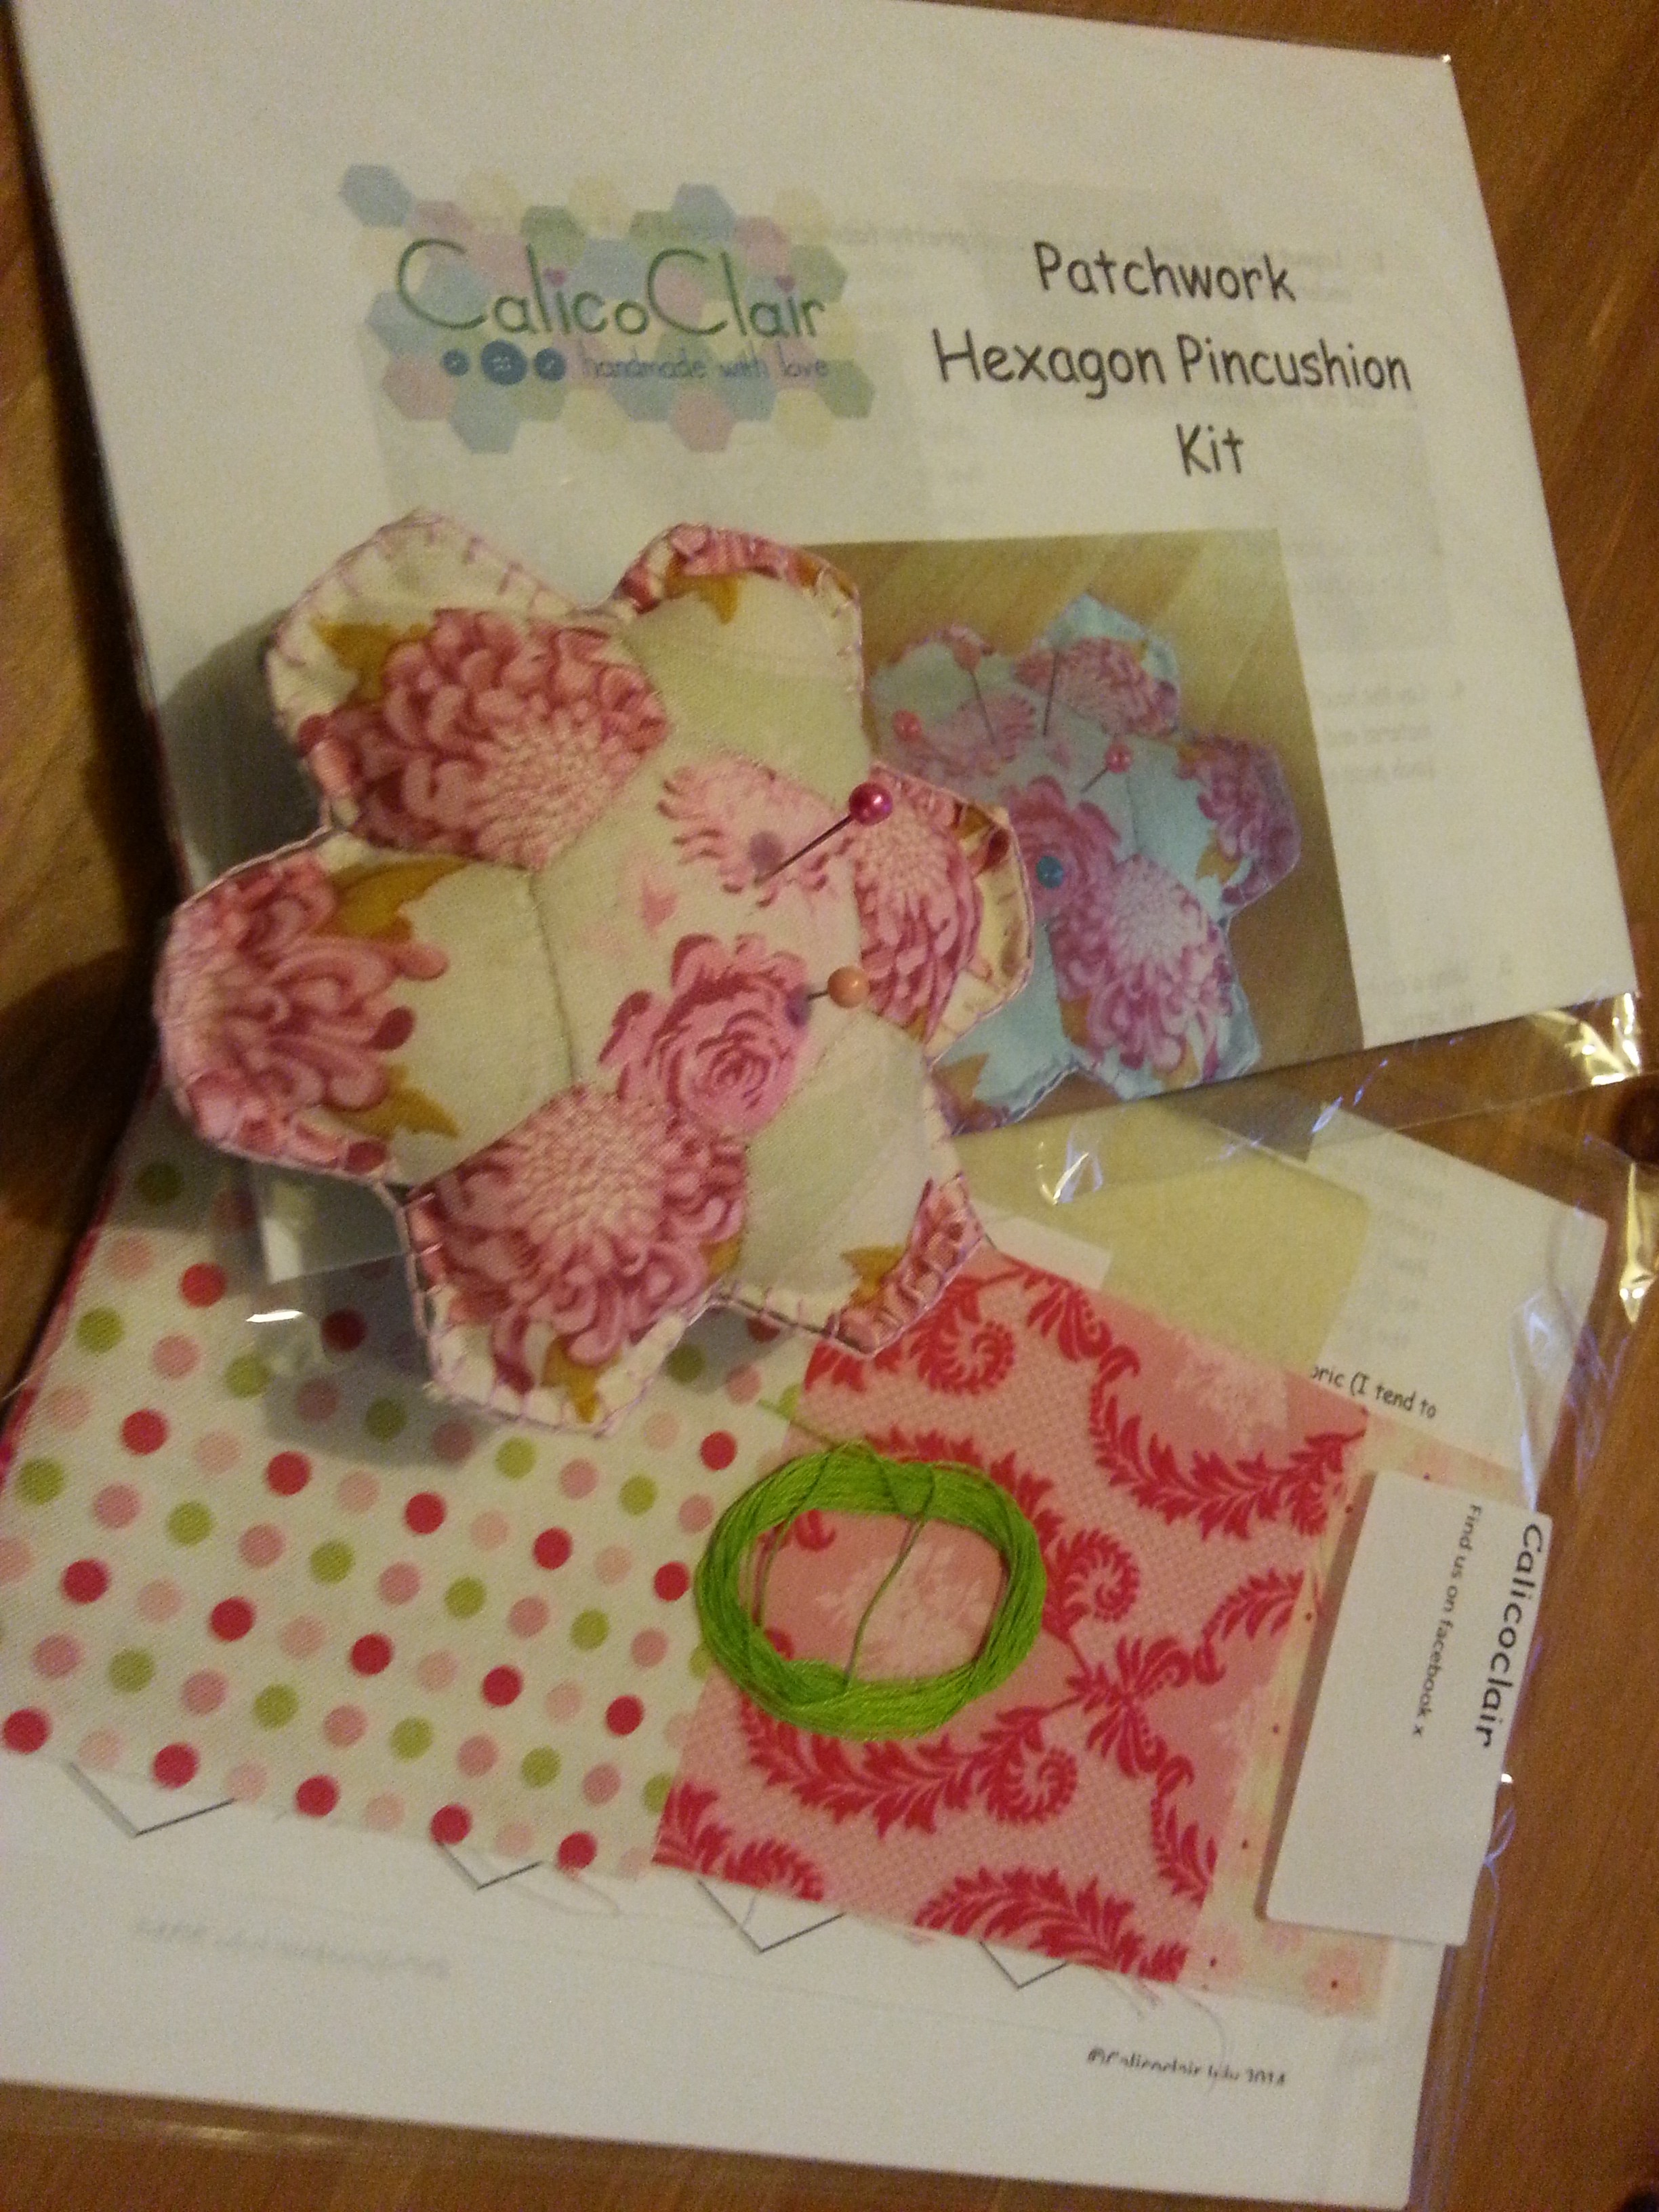 Patchwork Pincushion Kit